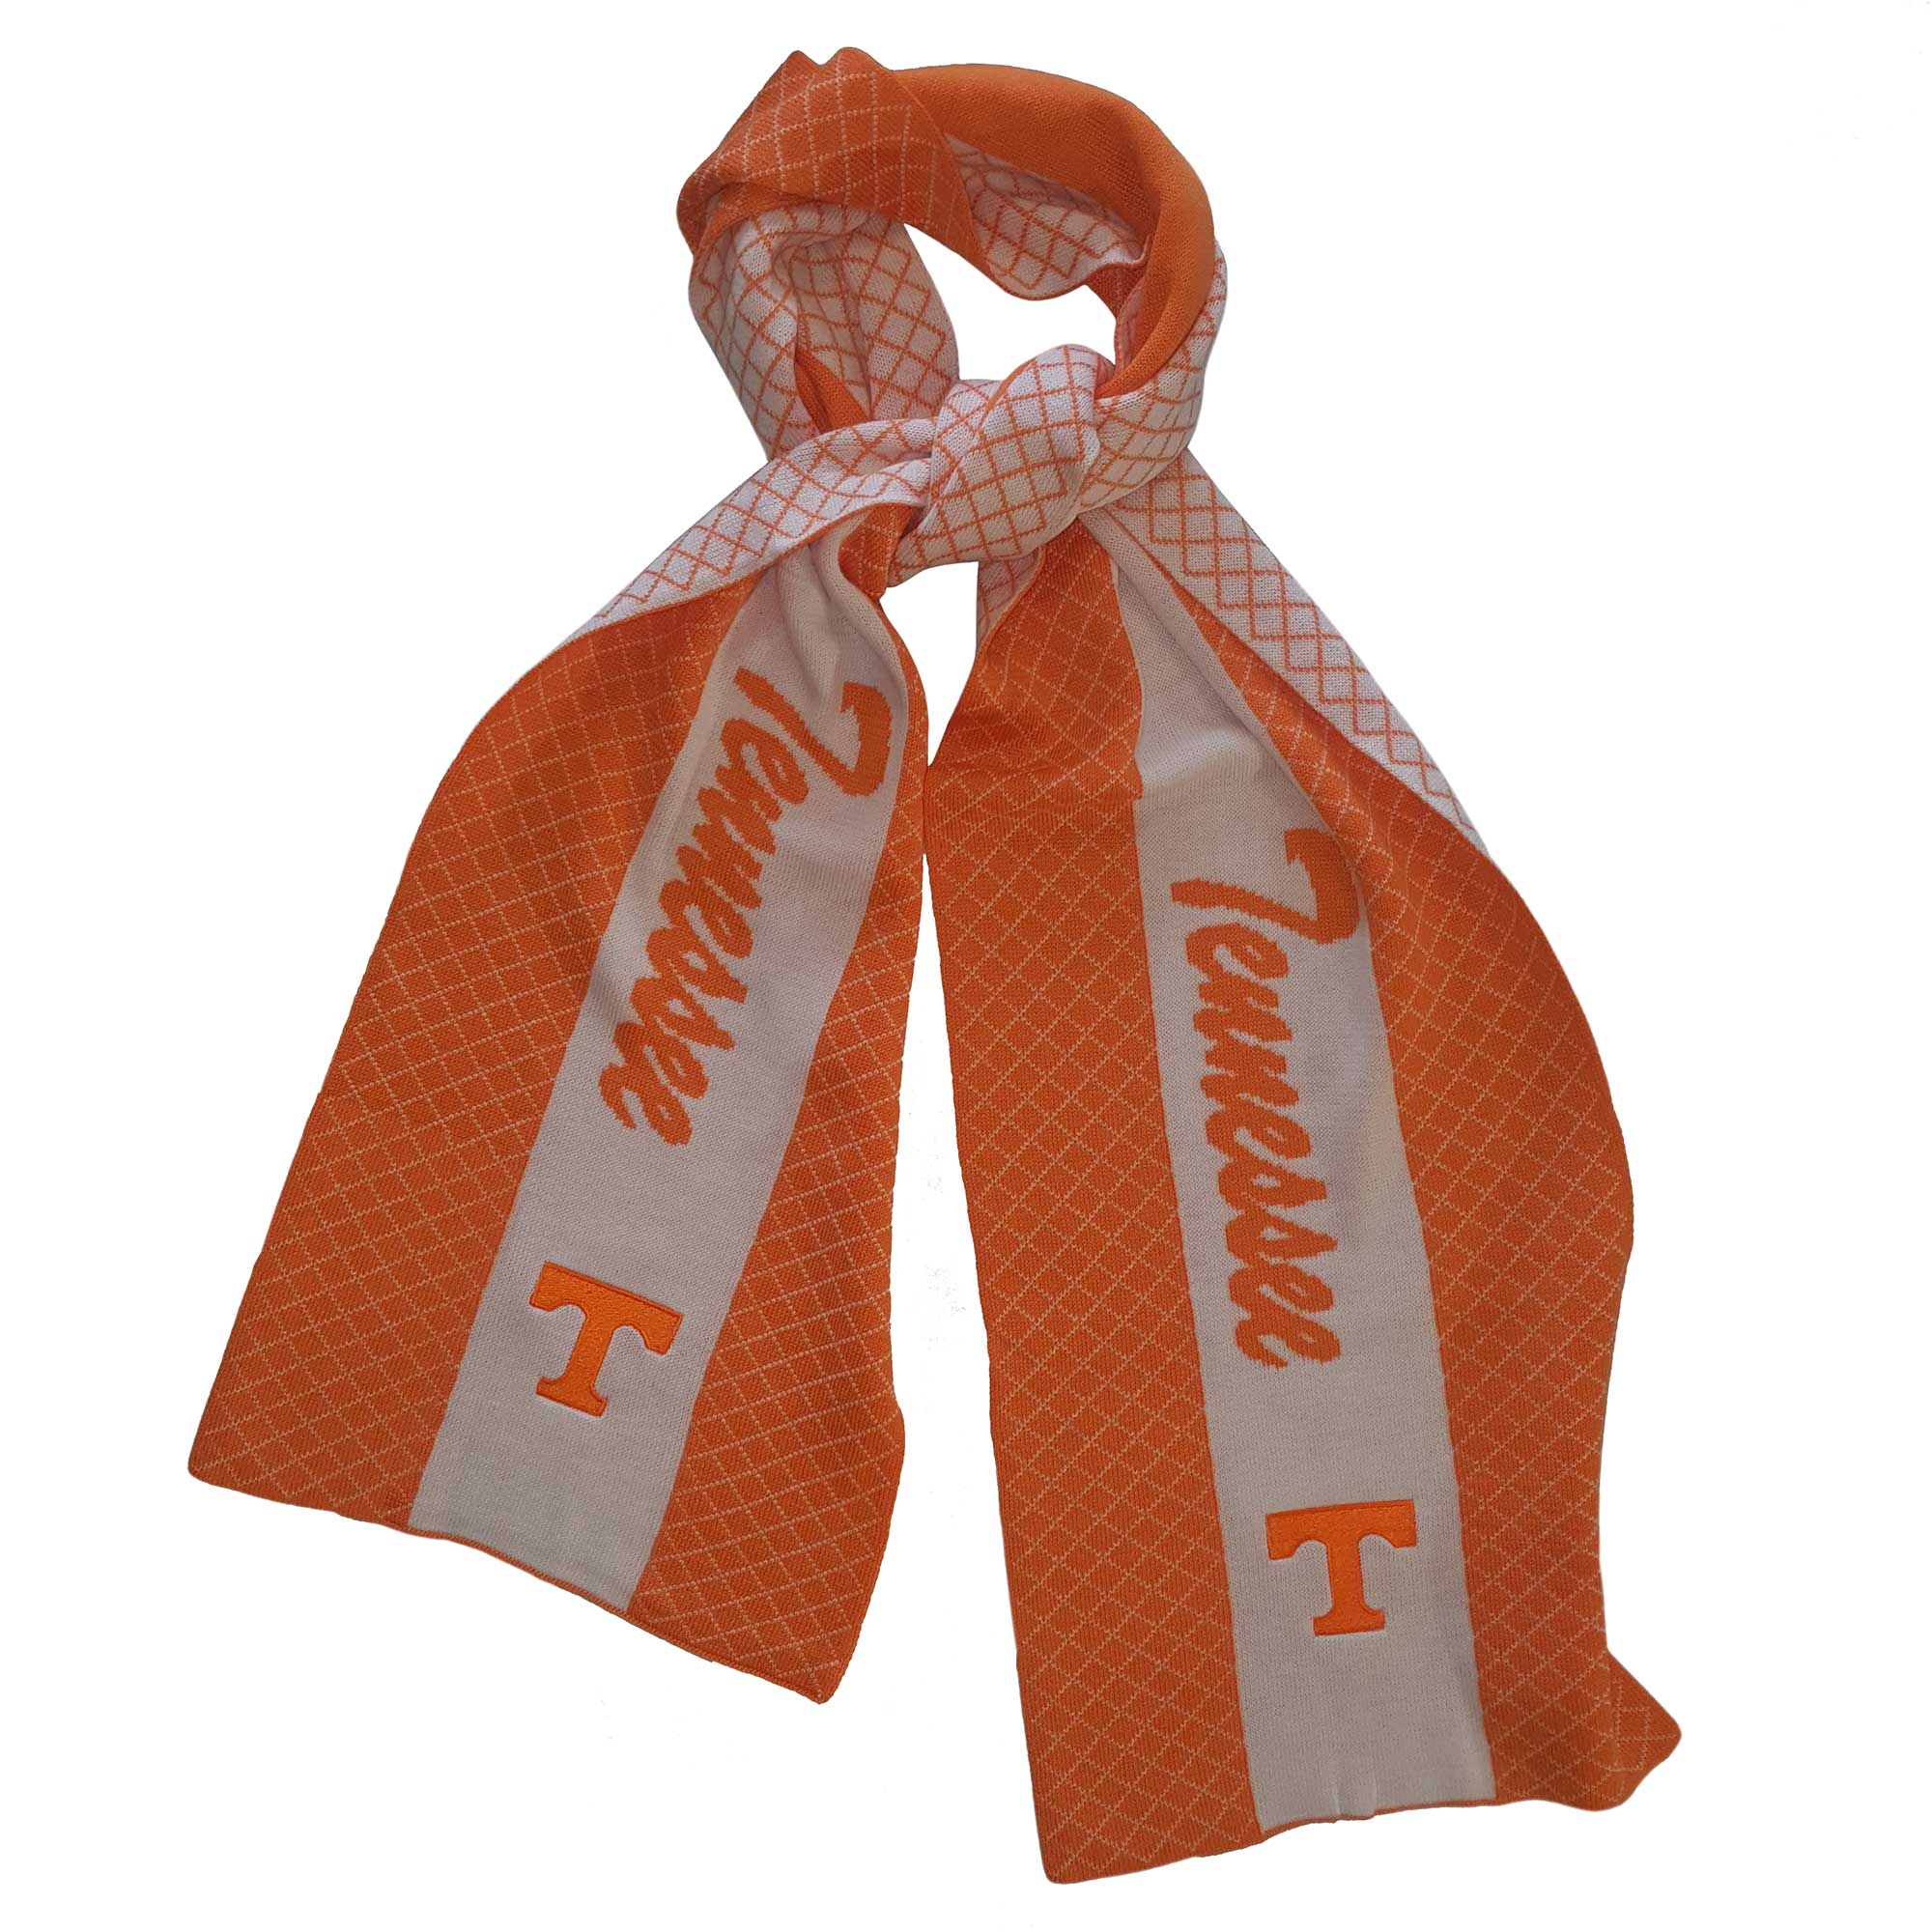 TENNESSEE VOLUNTEERS 2 TONE KNIT SCARF